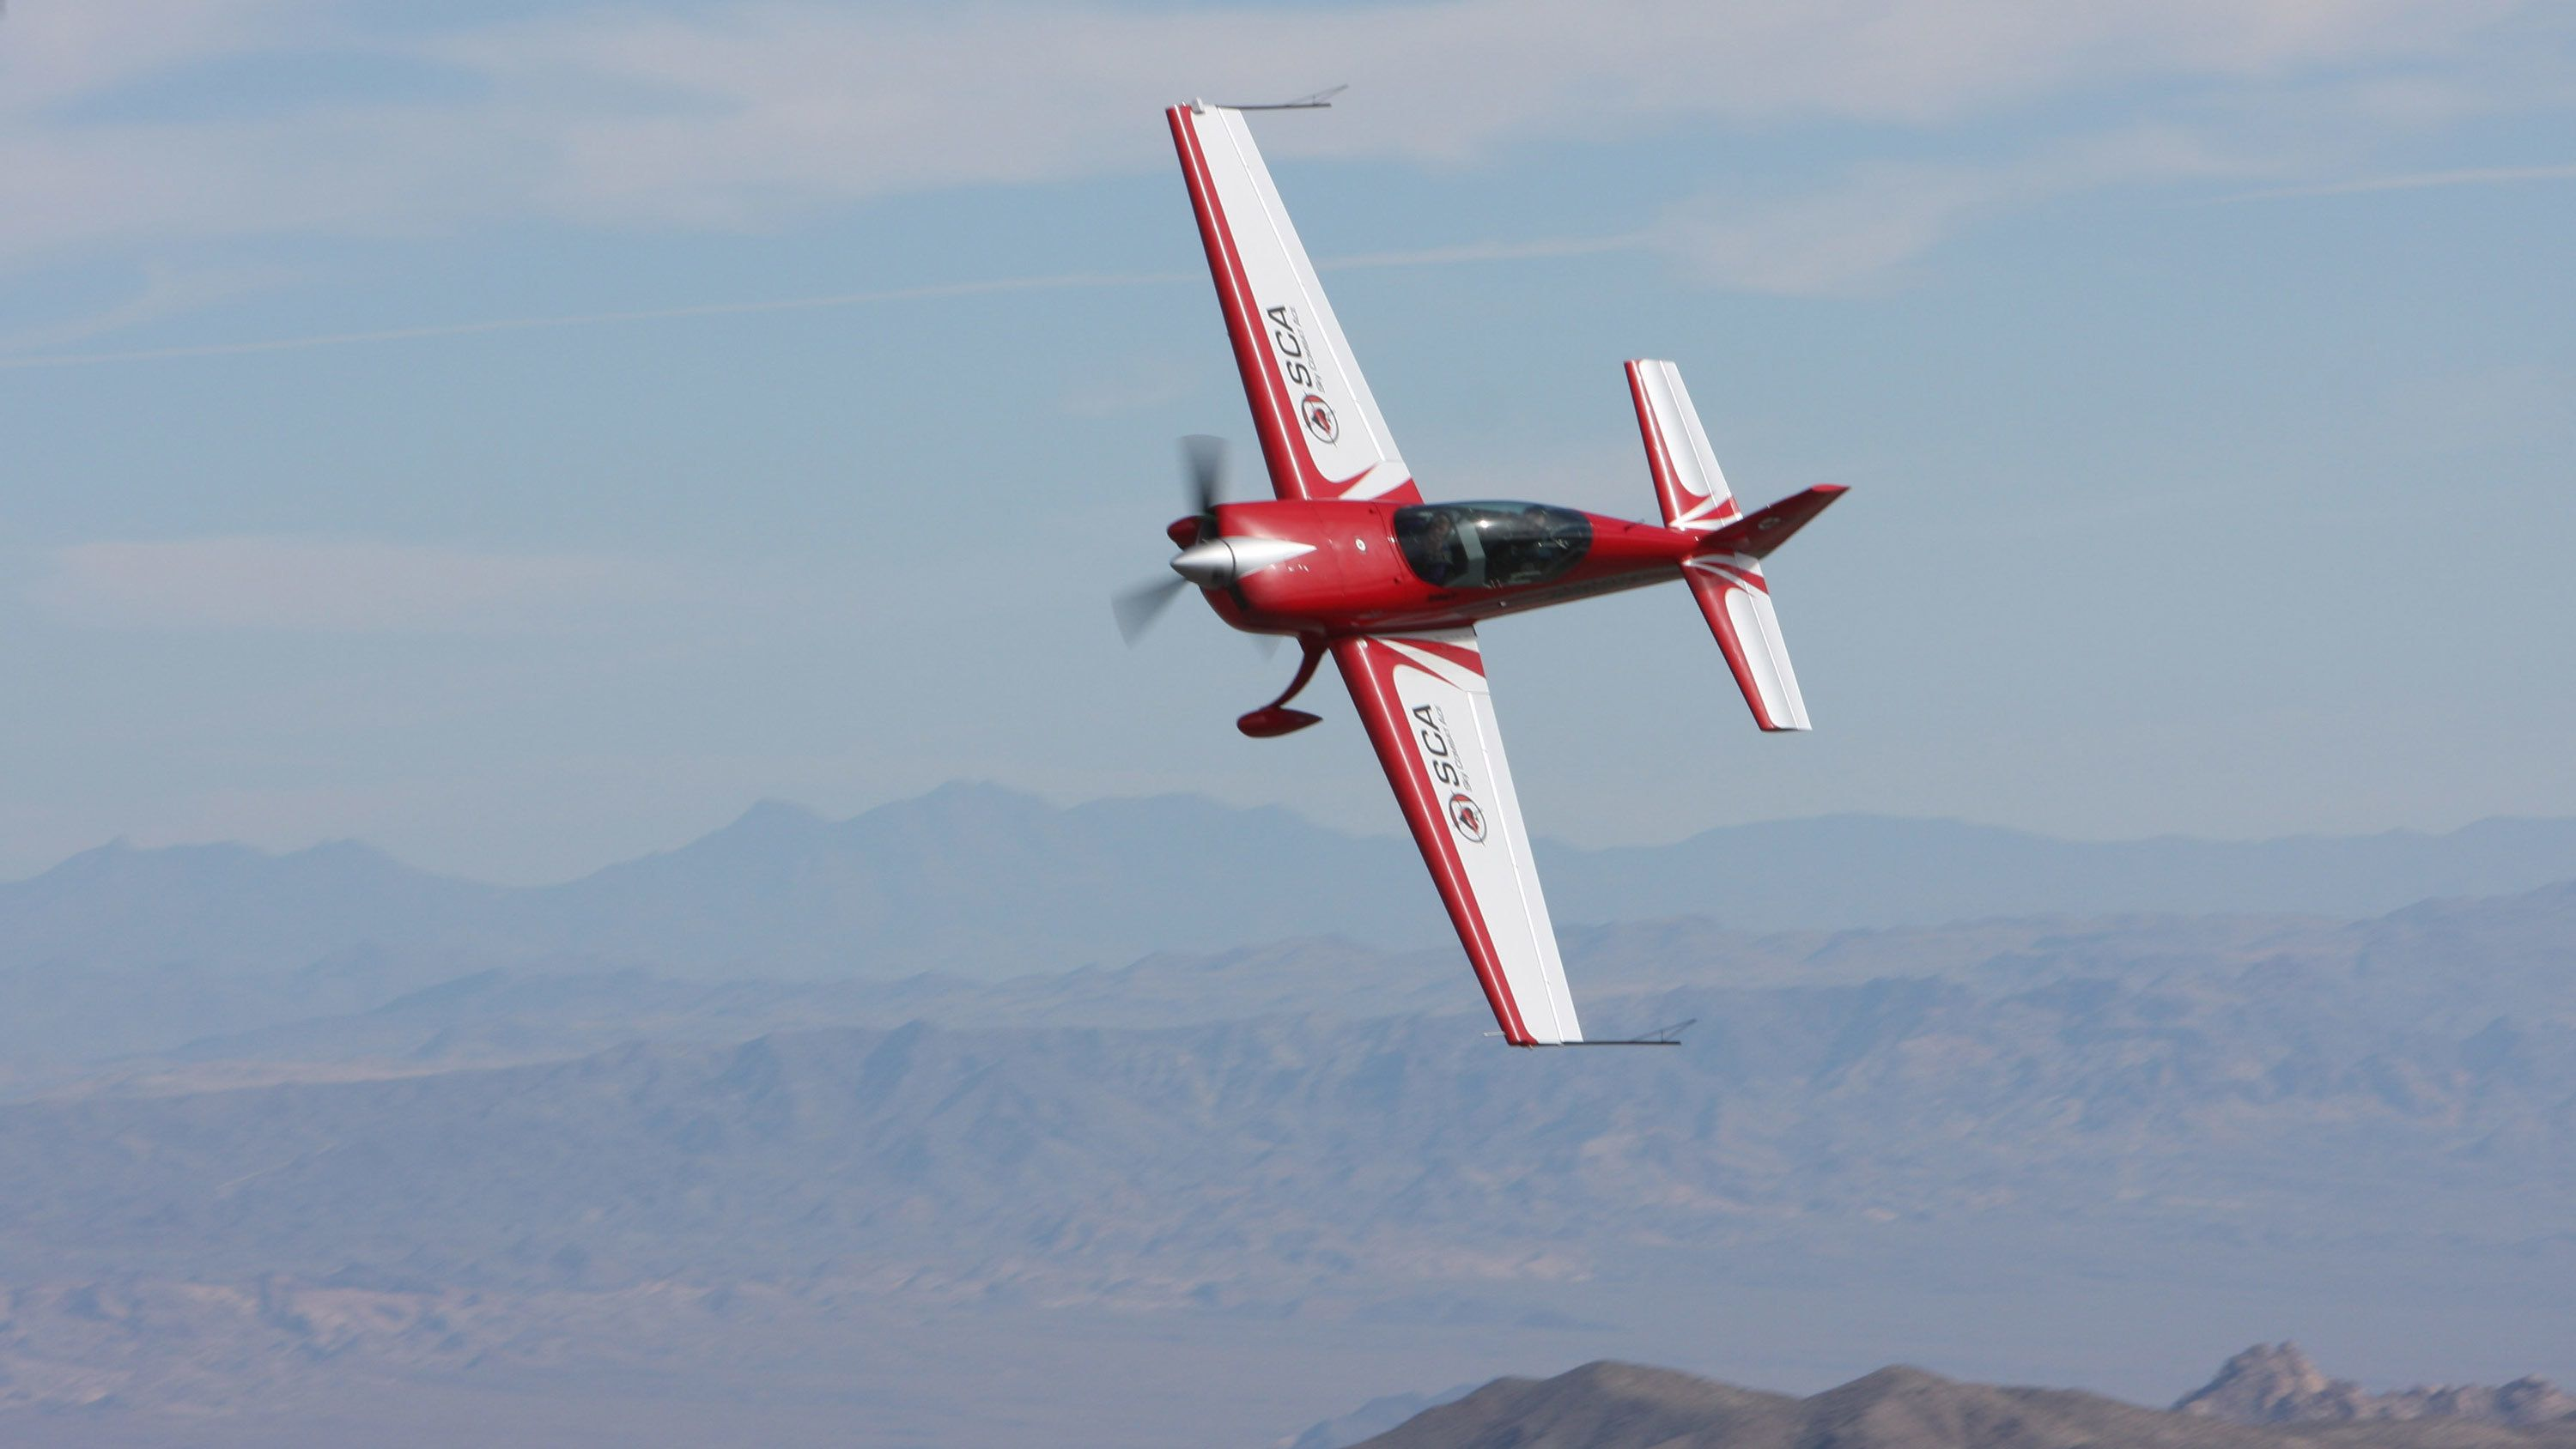 red plane making a sharp turn in the air in San Diego